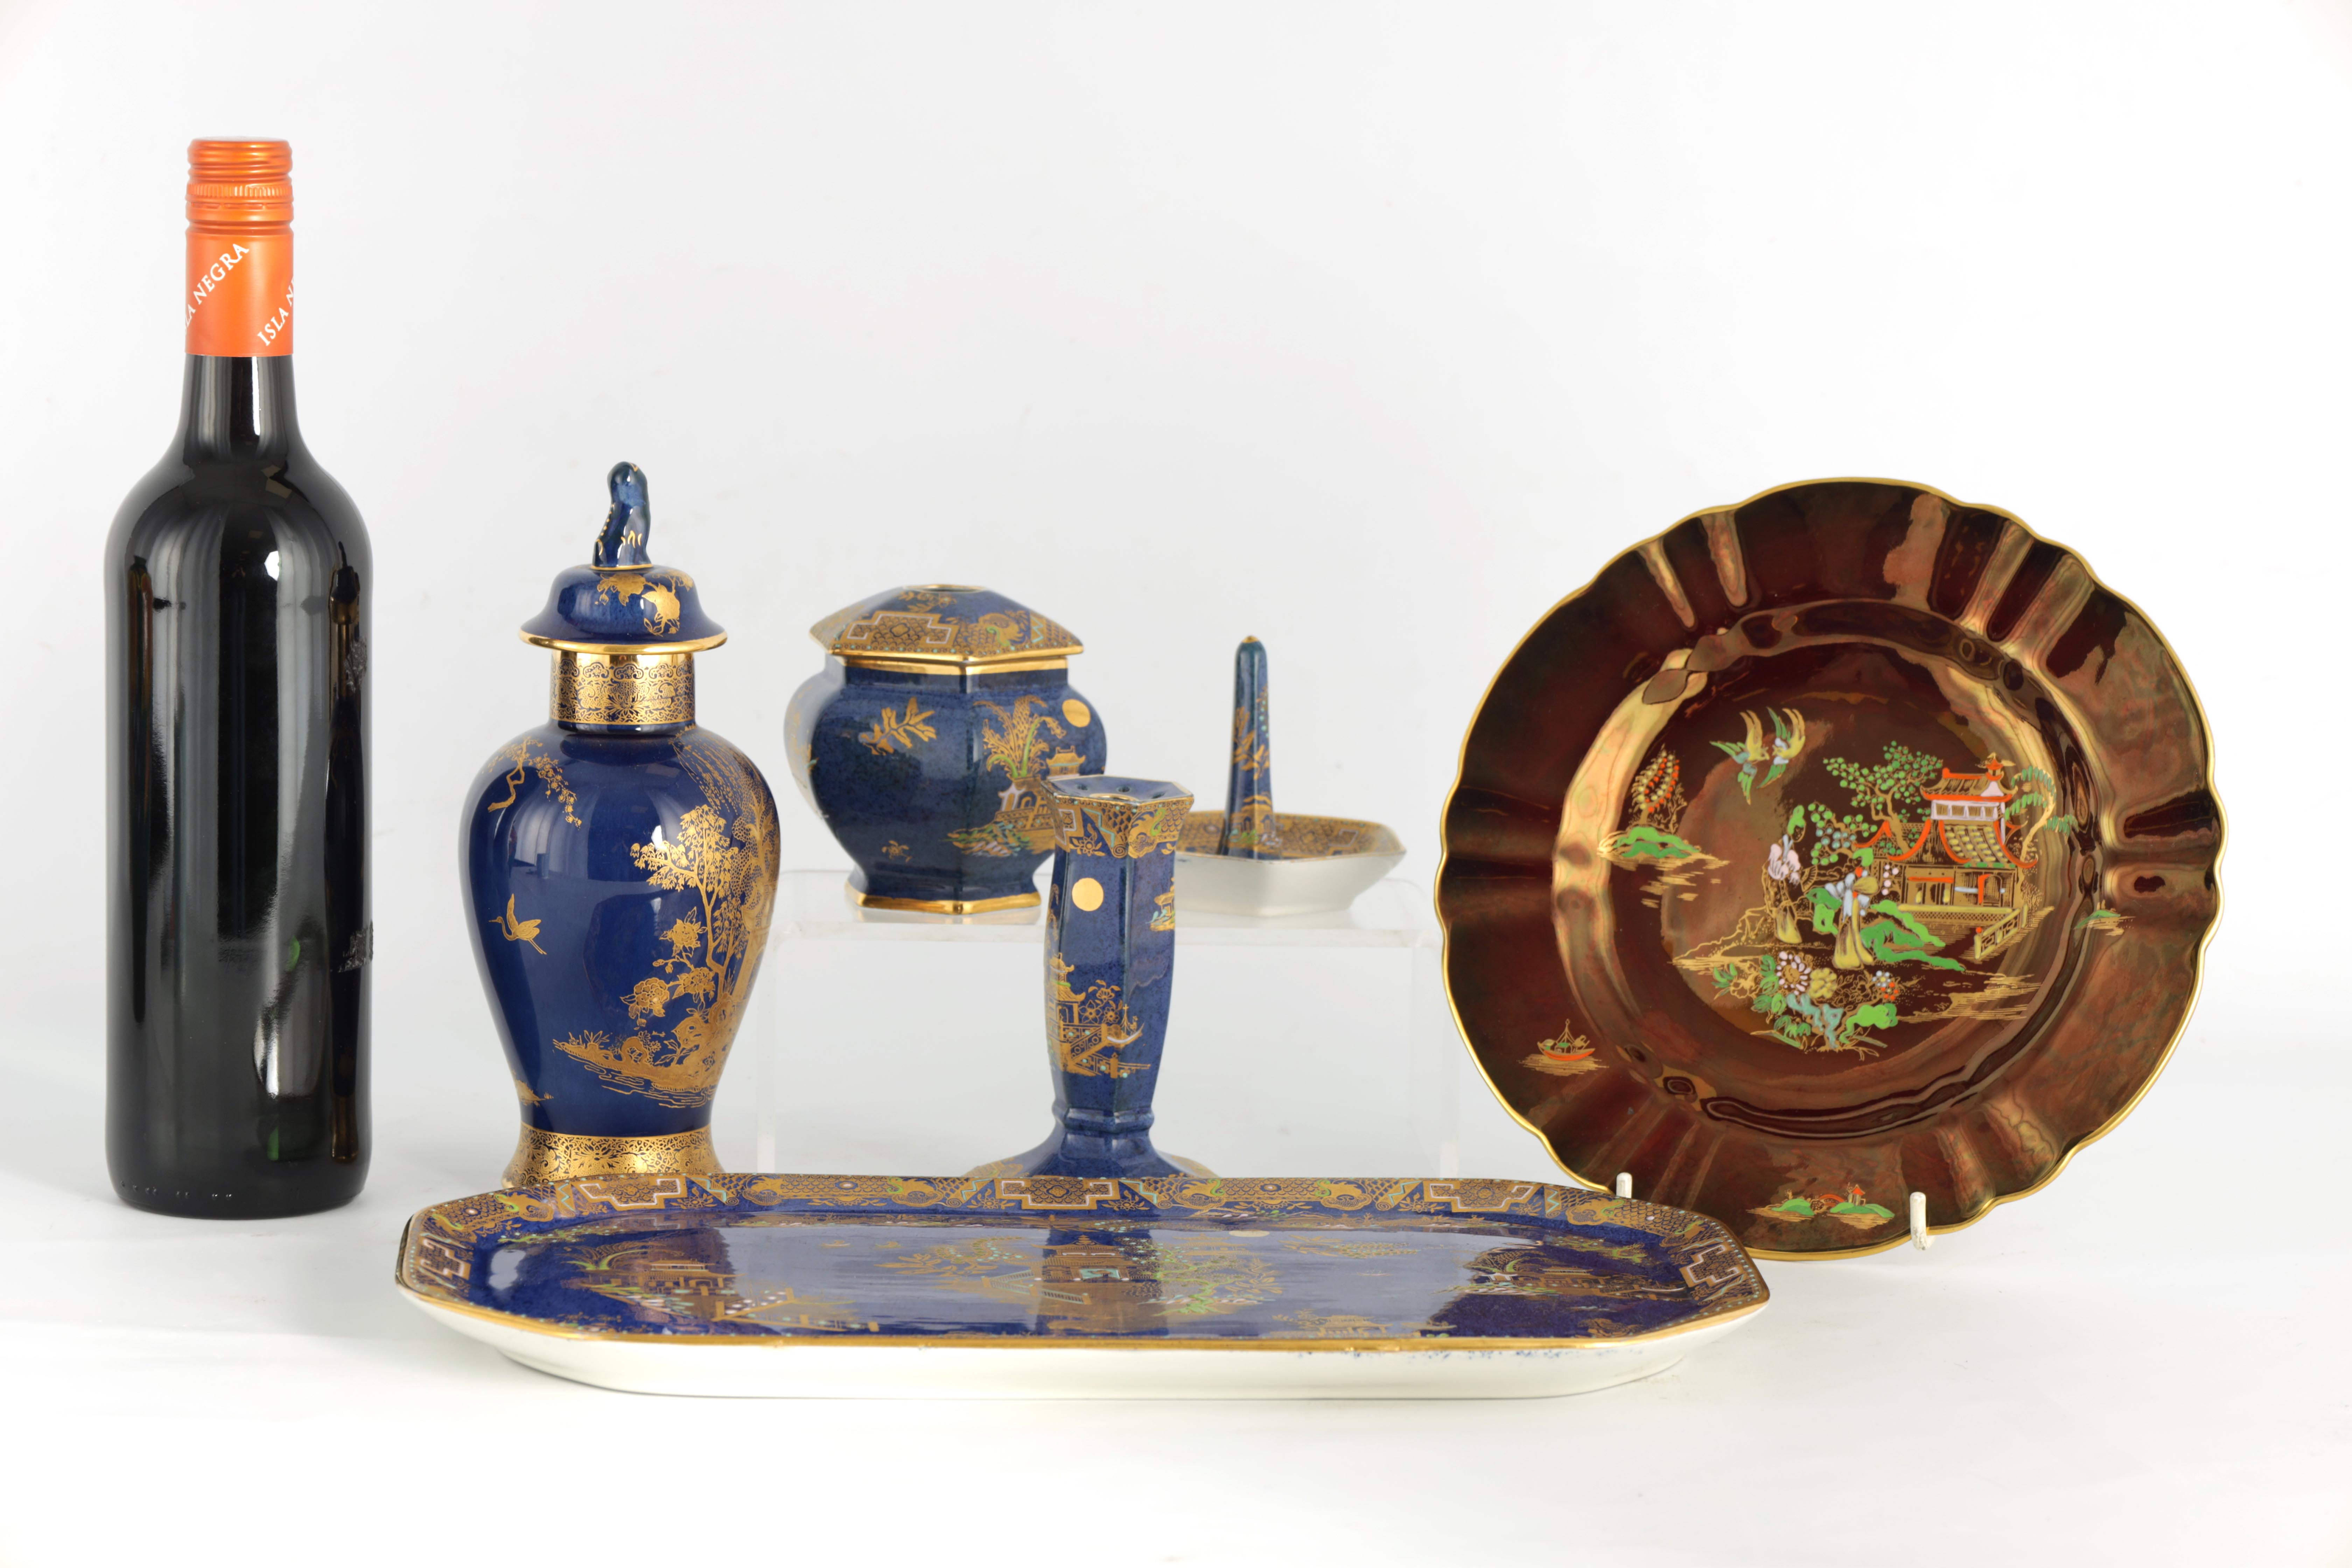 A CARLTON WARE FIVE PIECE DRESSING TABLE SET decorated in an oriental gilt pattern with pagodas - Image 2 of 18